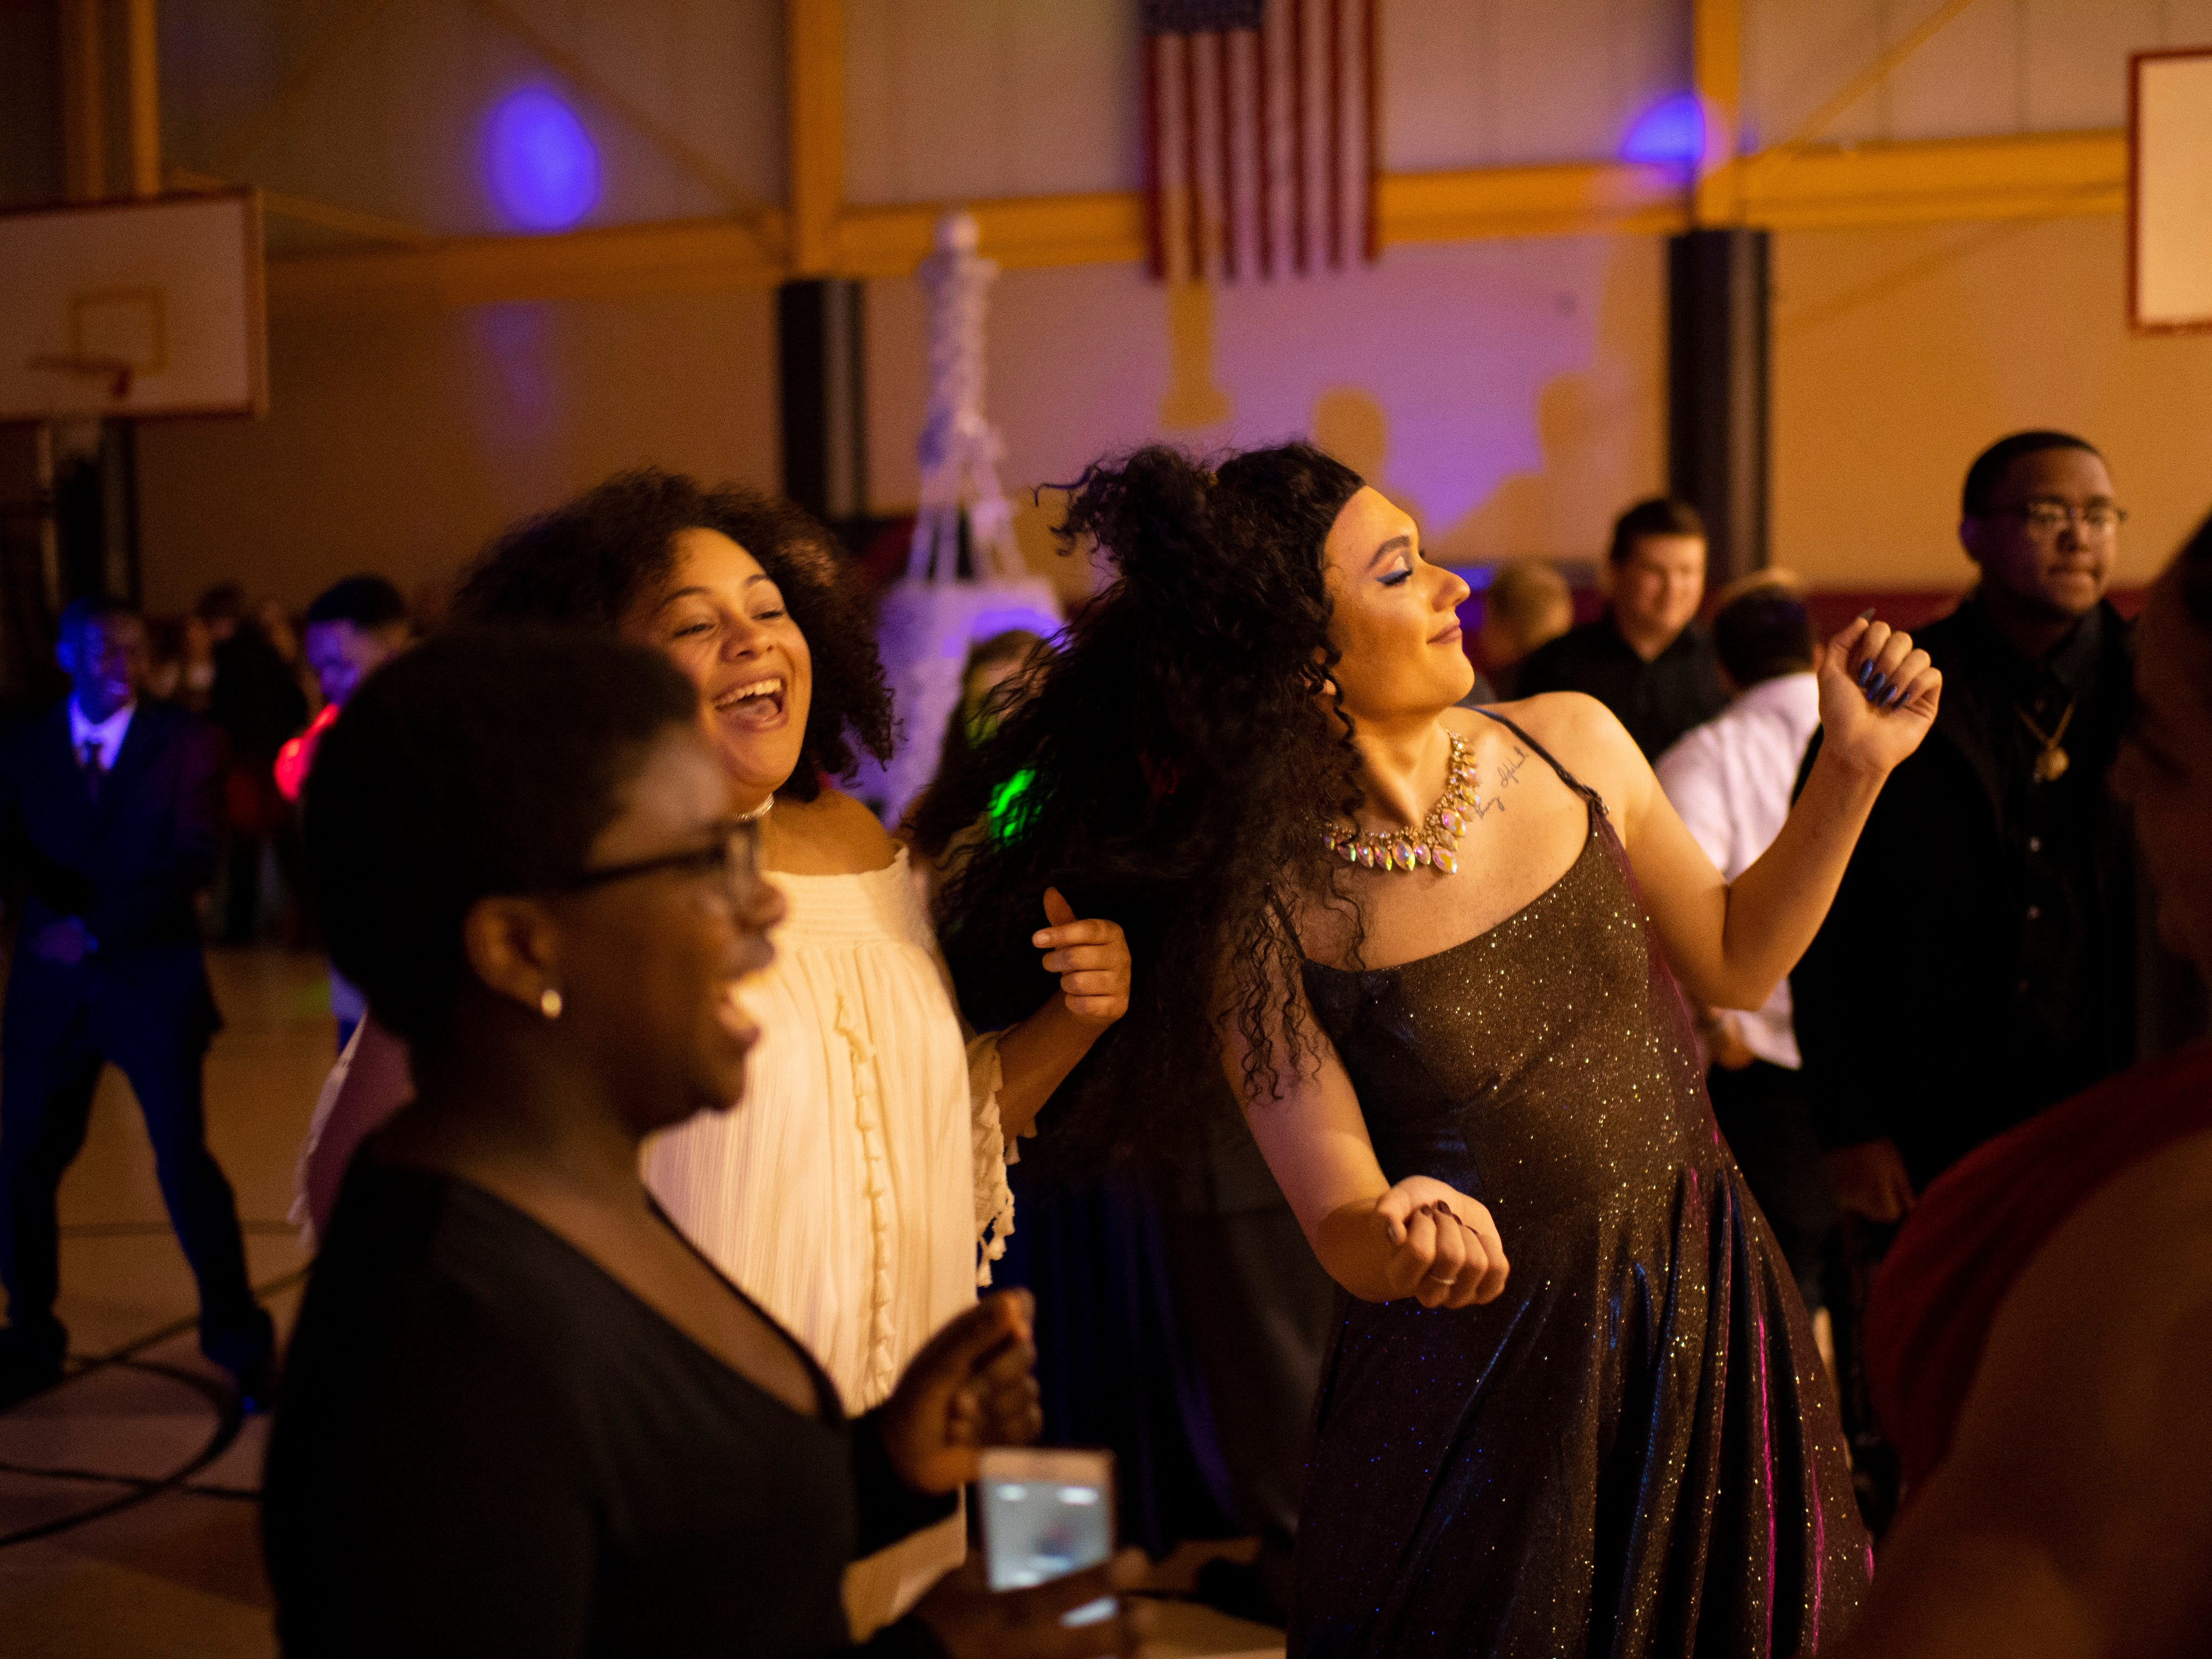 Students dance during A Night in Paris at the Harwood Career Prep prom Saturday night.